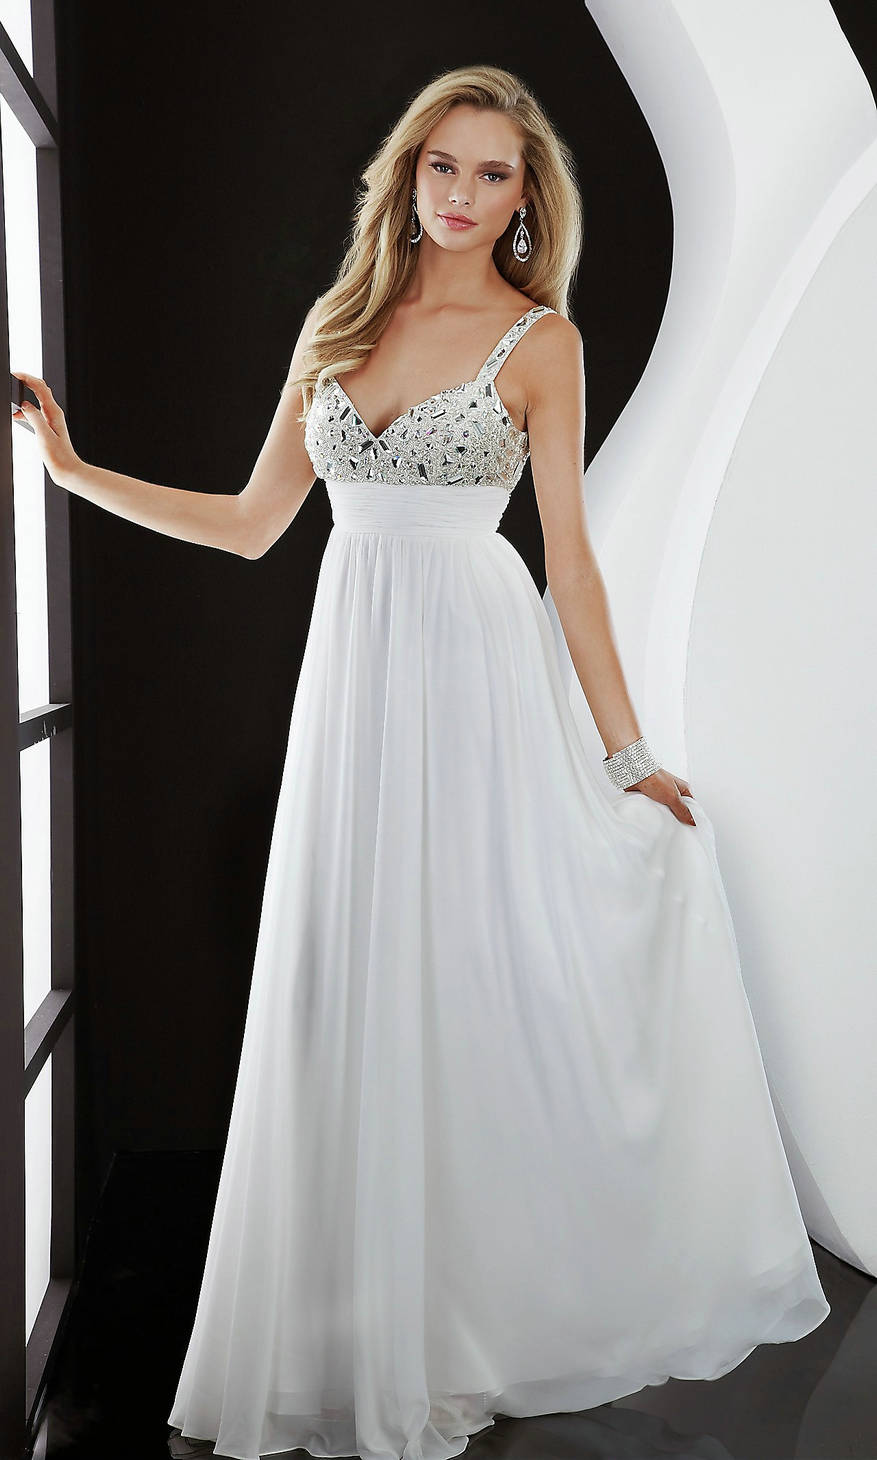 WhiteAzalea Elegant Dresses: January 2013